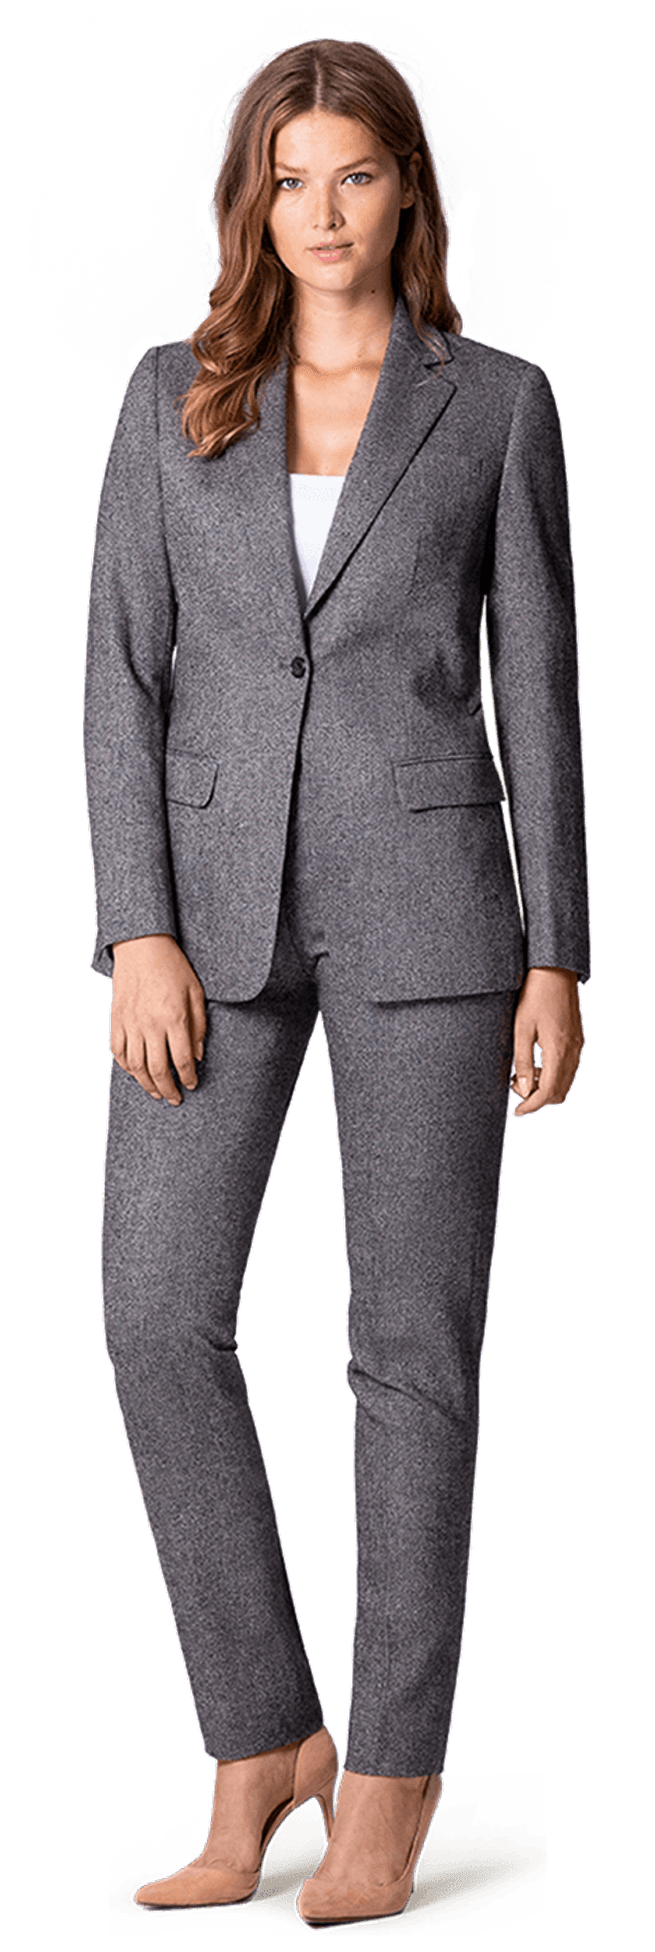 a360356da5f0e Women's Suits - Made to Measure - Sumissura